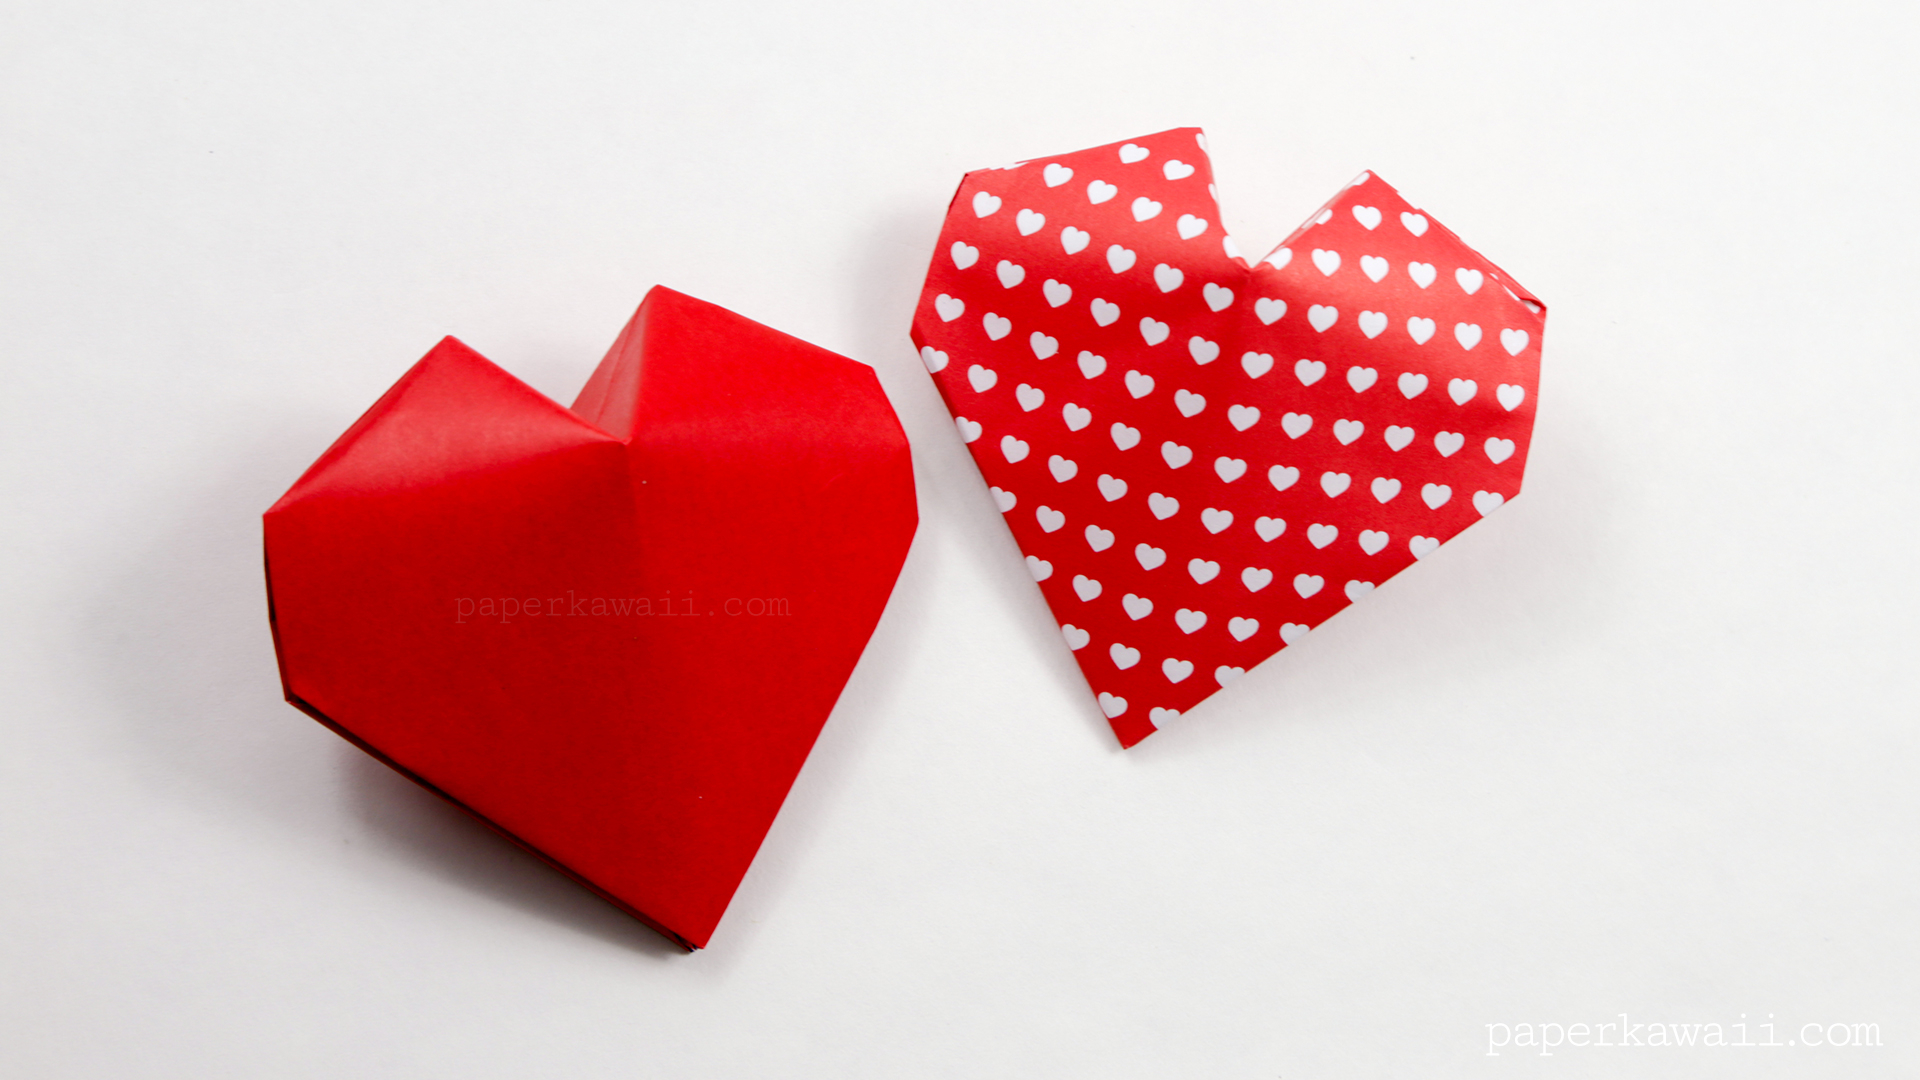 Origami Pokeball Instructions Origami 3d Puffy Heart Instructions Paper Kawaii